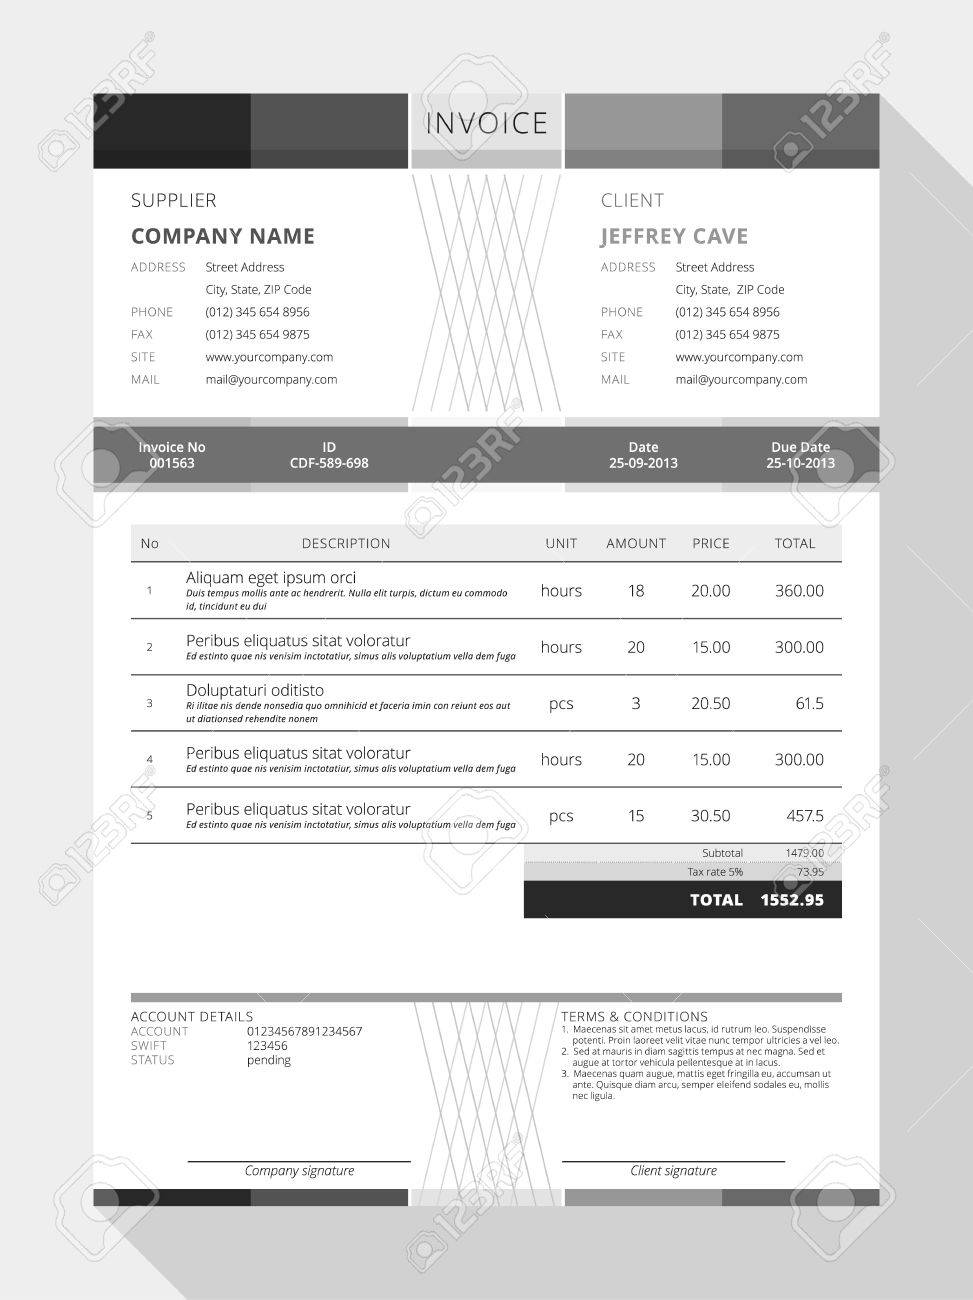 Howcanigettallerus  Inspiring Design An Invoice  Professional Graphic Design Invoice  With Exquisite Vector Customizable Invoice Form Template Design Vector   Design An Invoice With Captivating Free Invoice Templates Printable Also Advantages And Disadvantages Of Invoice In Addition Invoice Template Australia No Gst And Meaning Of Performa Invoice As Well As Format Of An Invoice Additionally Invoice Template With Gst From Happytomco With Howcanigettallerus  Exquisite Design An Invoice  Professional Graphic Design Invoice  With Captivating Vector Customizable Invoice Form Template Design Vector   Design An Invoice And Inspiring Free Invoice Templates Printable Also Advantages And Disadvantages Of Invoice In Addition Invoice Template Australia No Gst From Happytomco